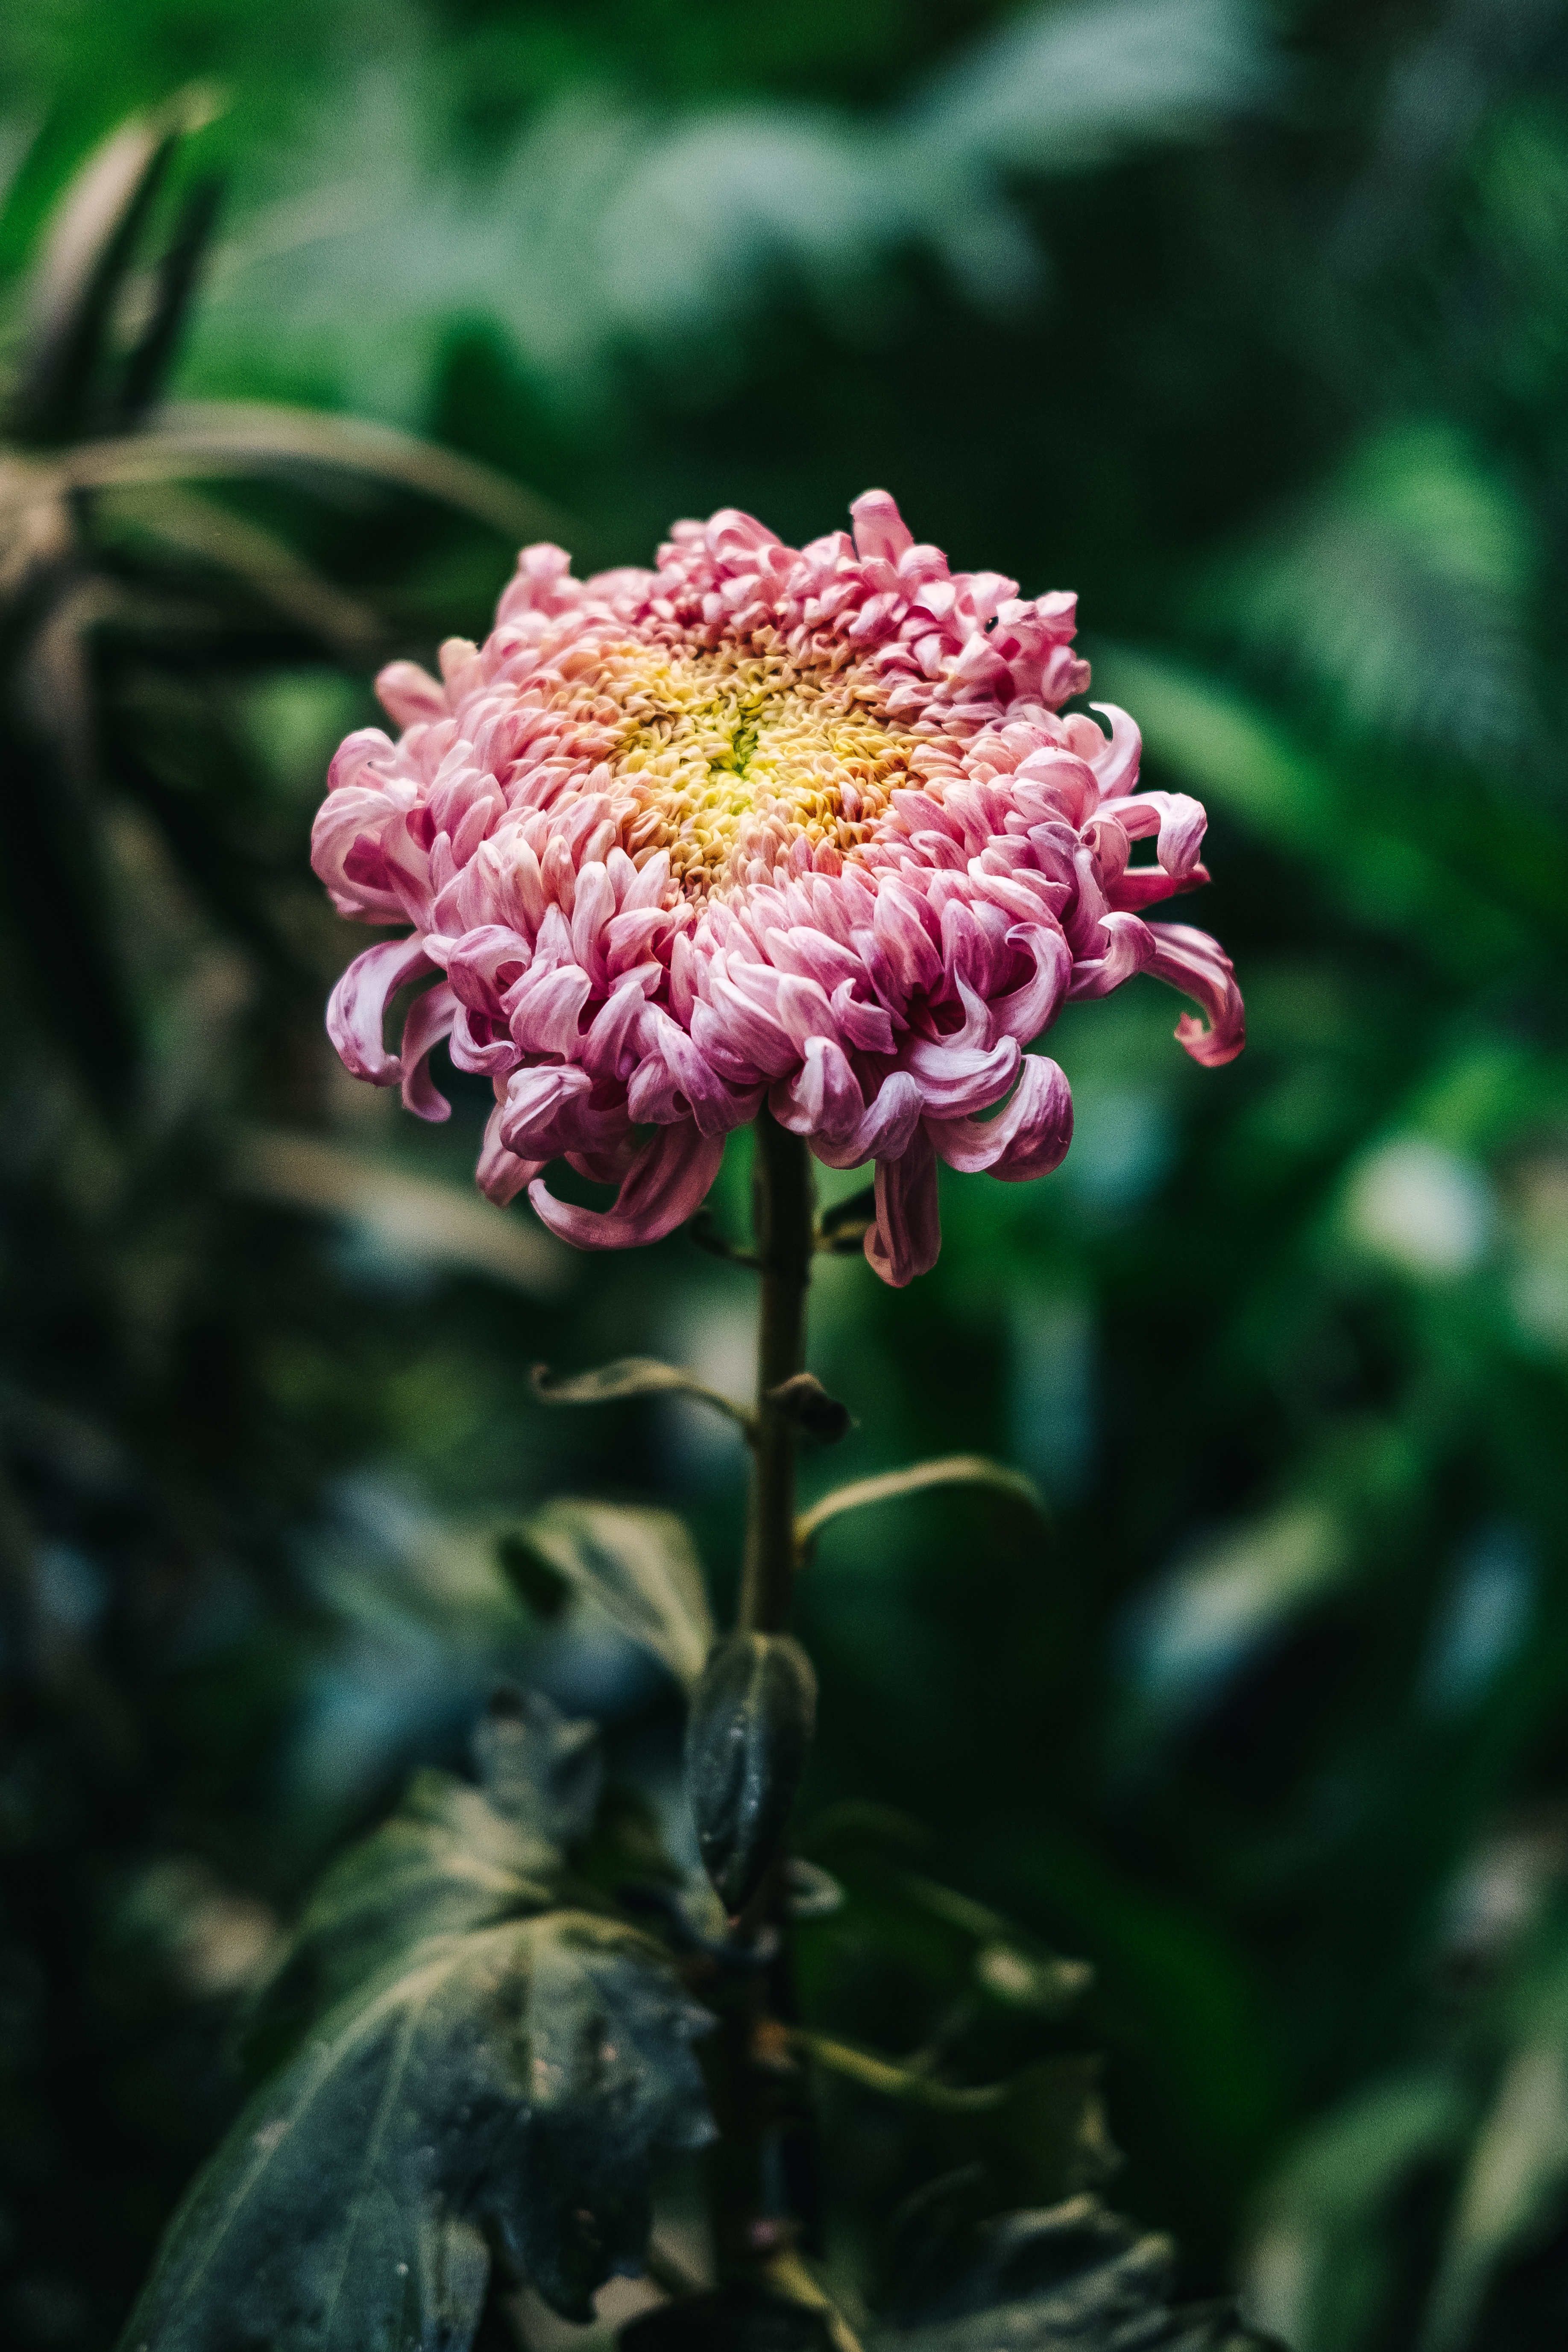 140426 download wallpaper Flowers, Chrysanthemum, Pink, Bud, Stem, Stalk, Blur, Smooth screensavers and pictures for free